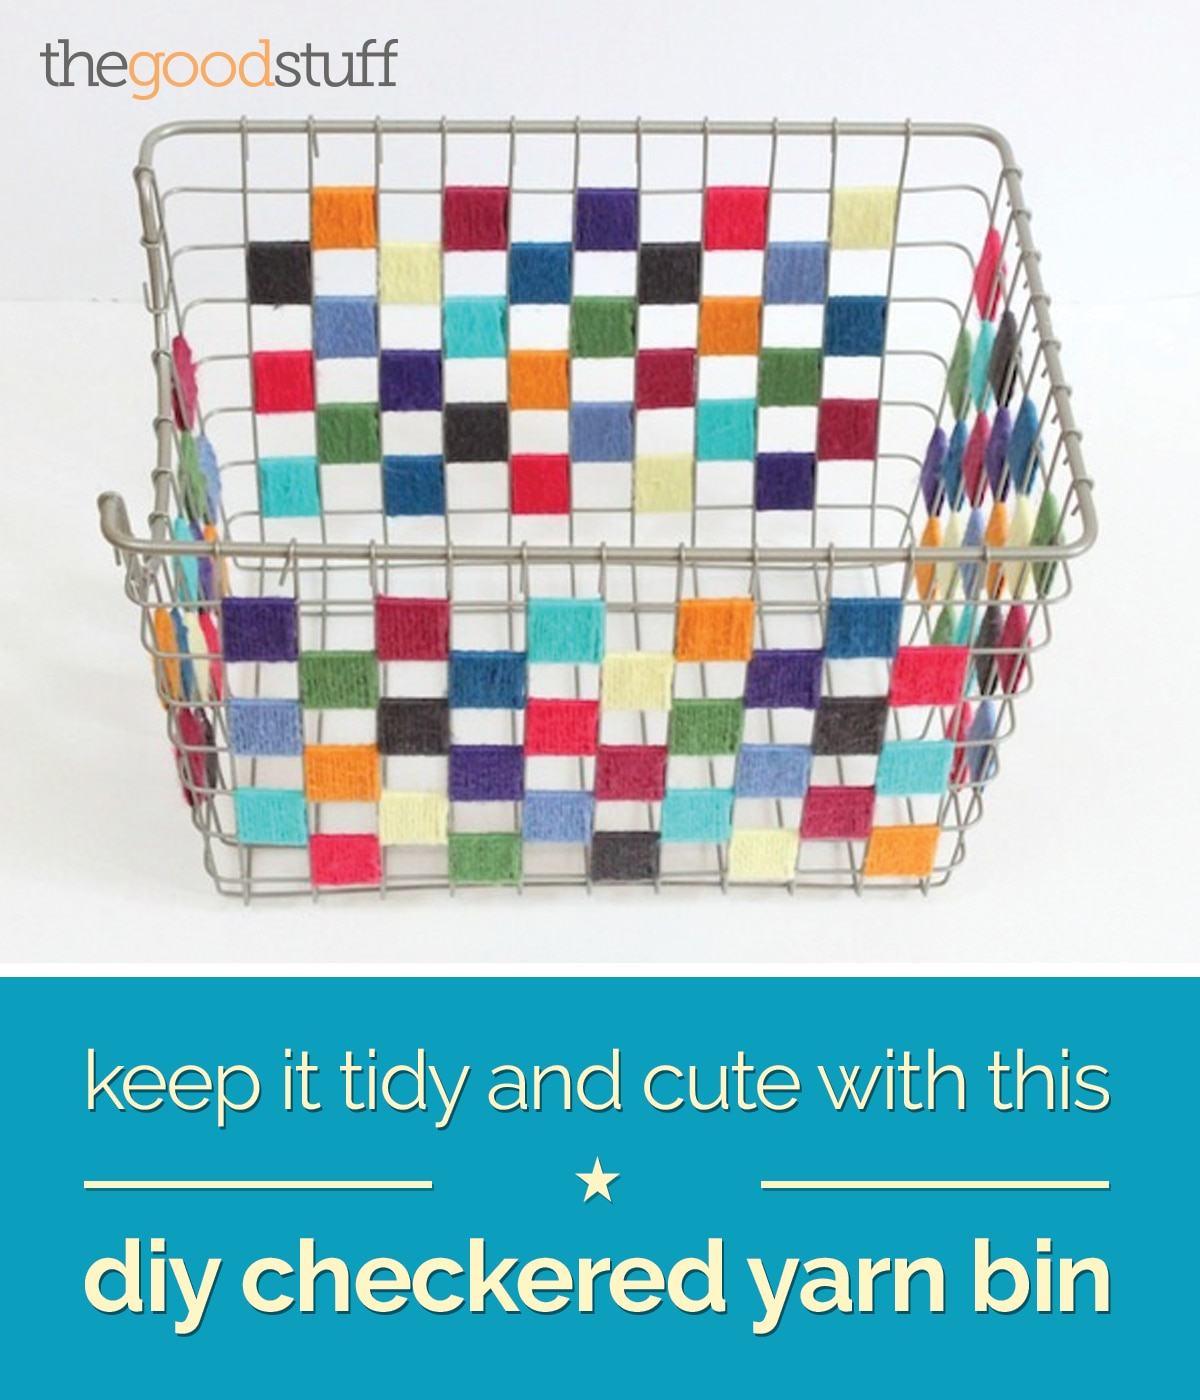 diy-checkered-yarn-bin